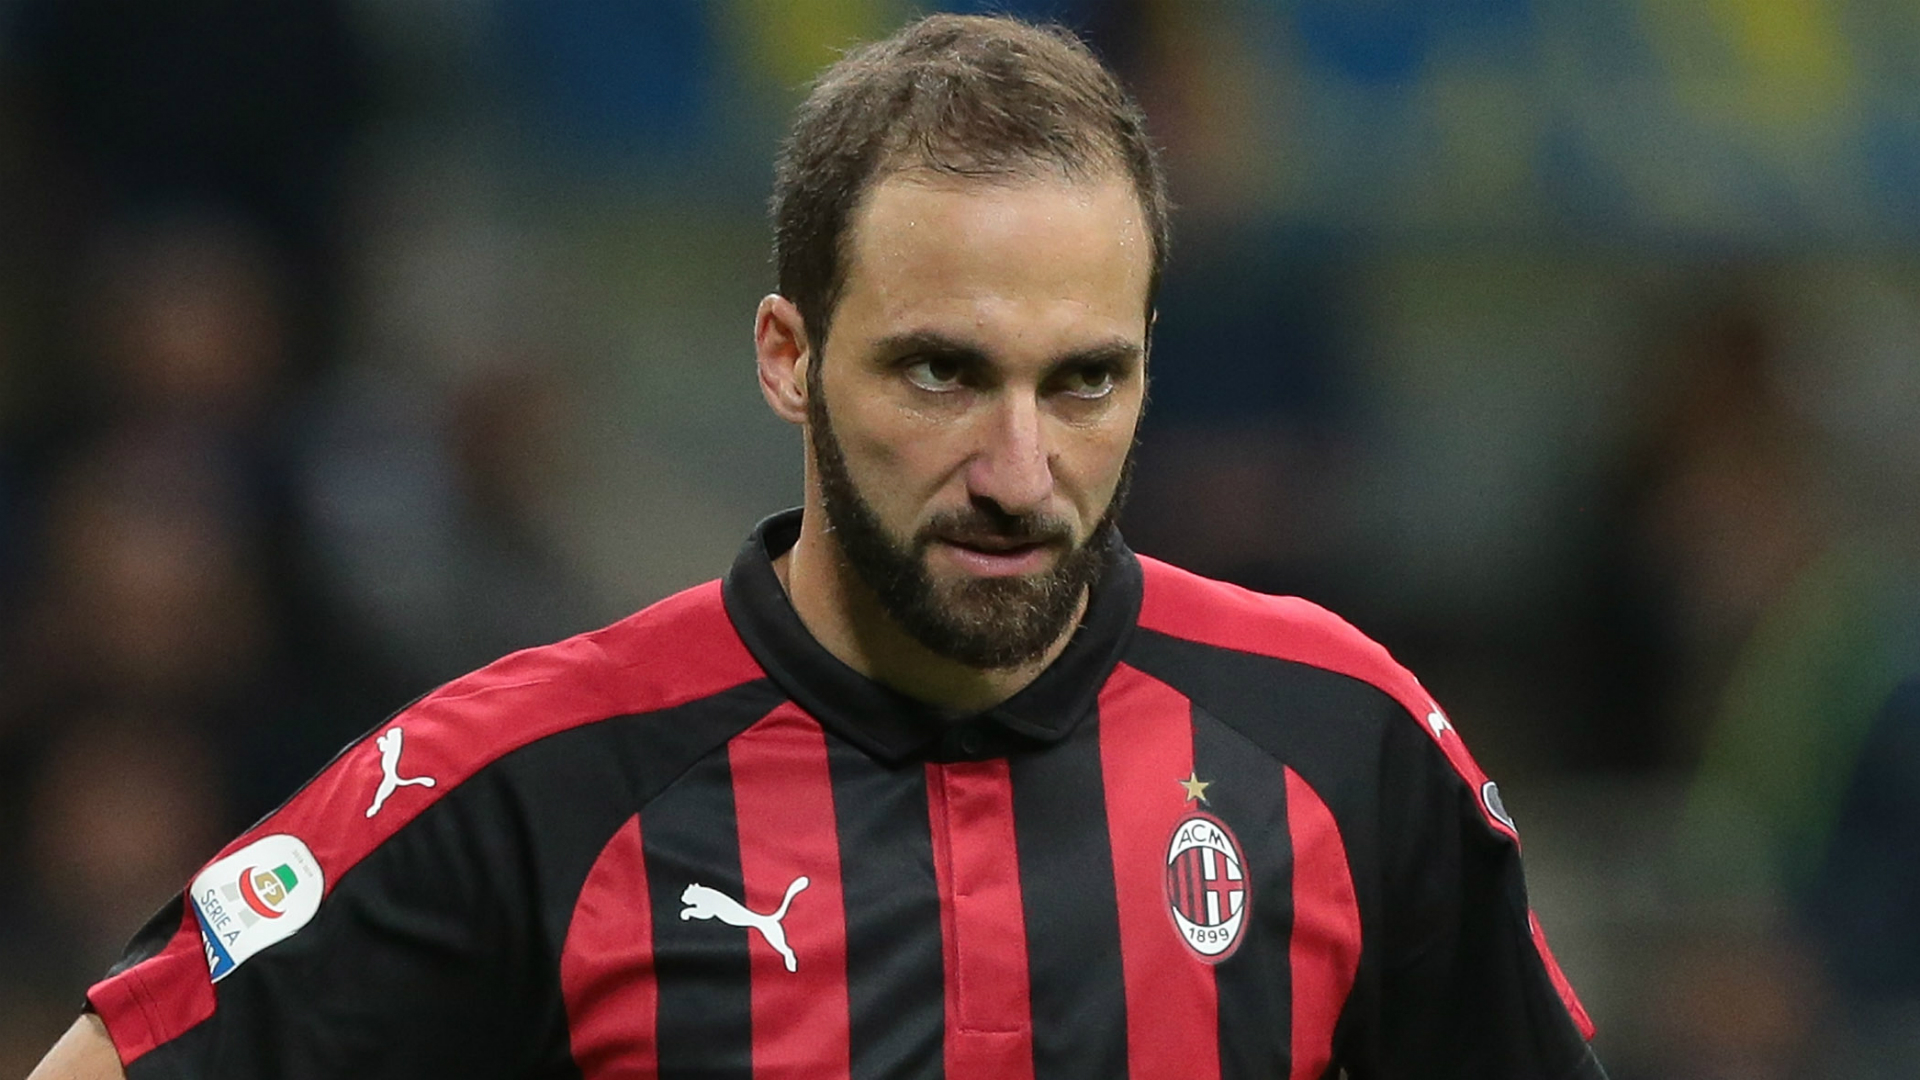 AC Milan striker Higuain fit to face parent club Juventus